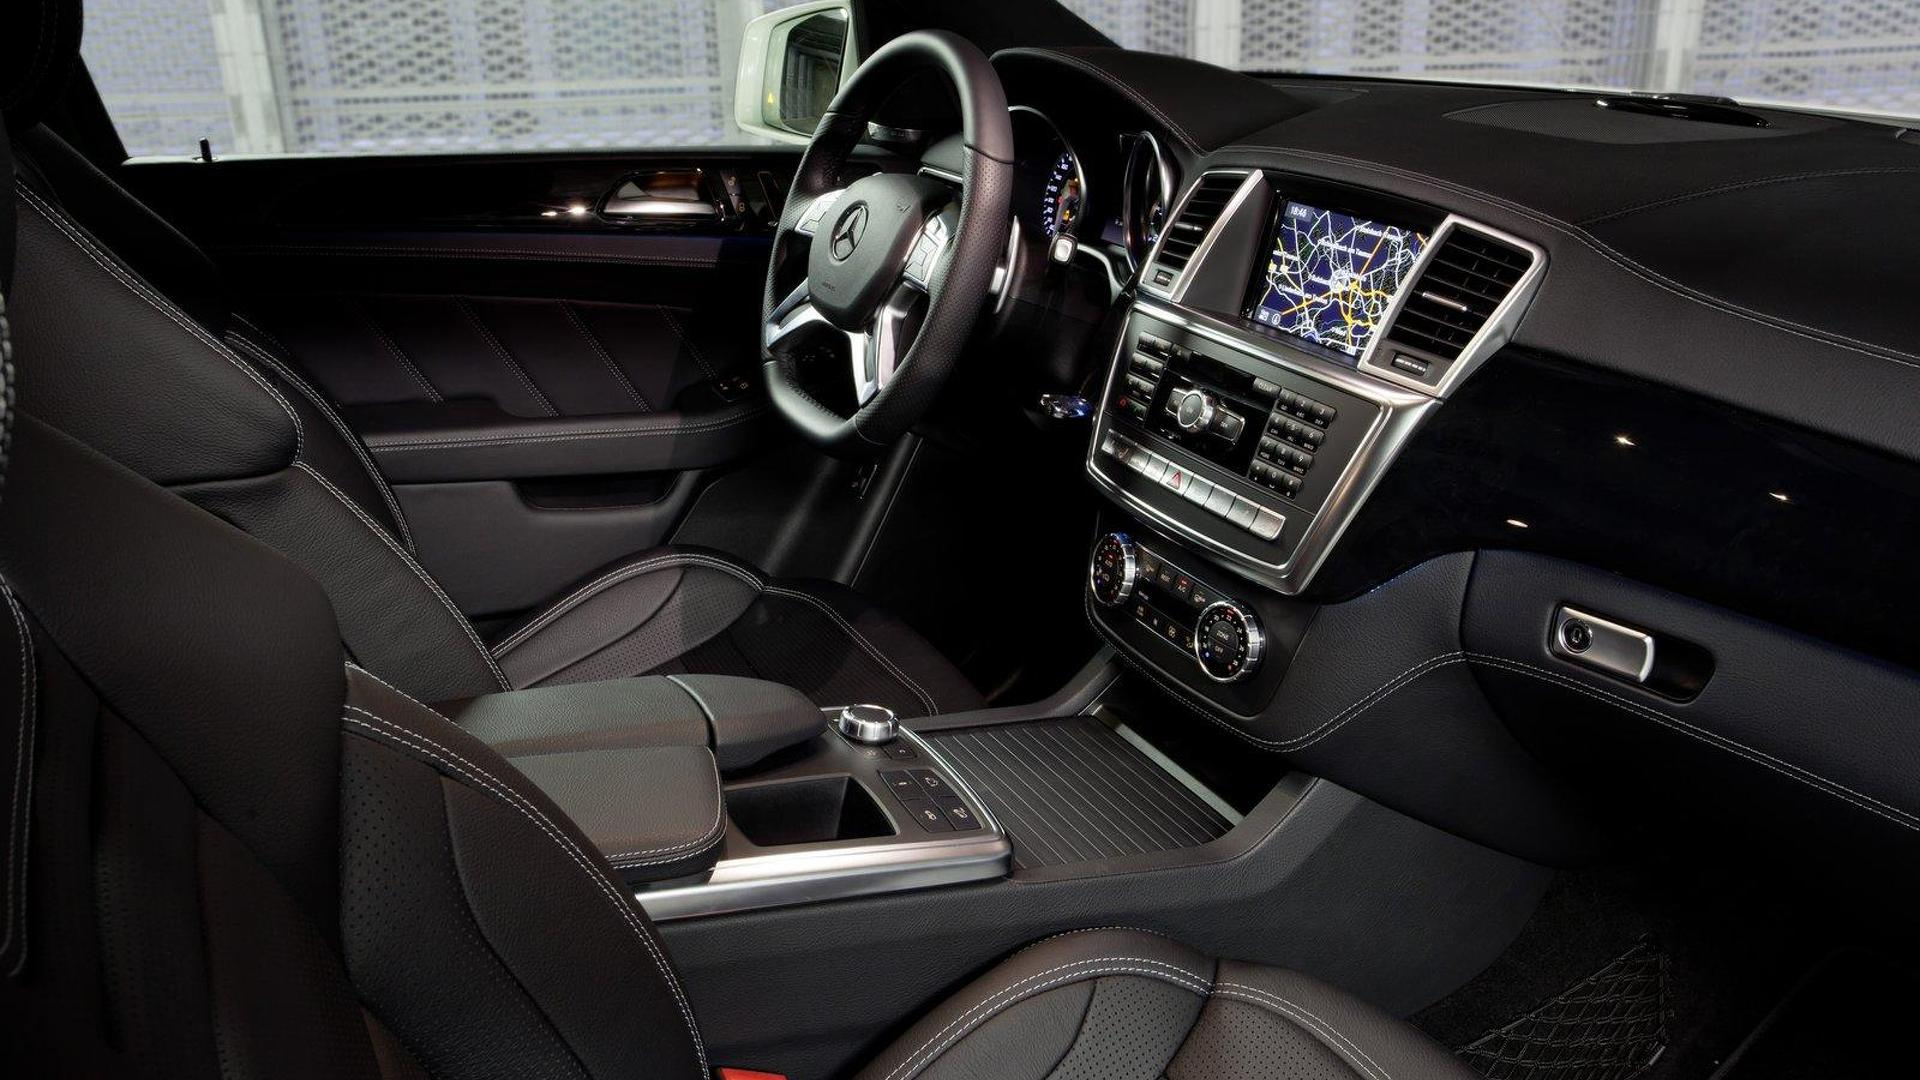 2012 Mercedes-Benz ML63 AMG revealed [video]